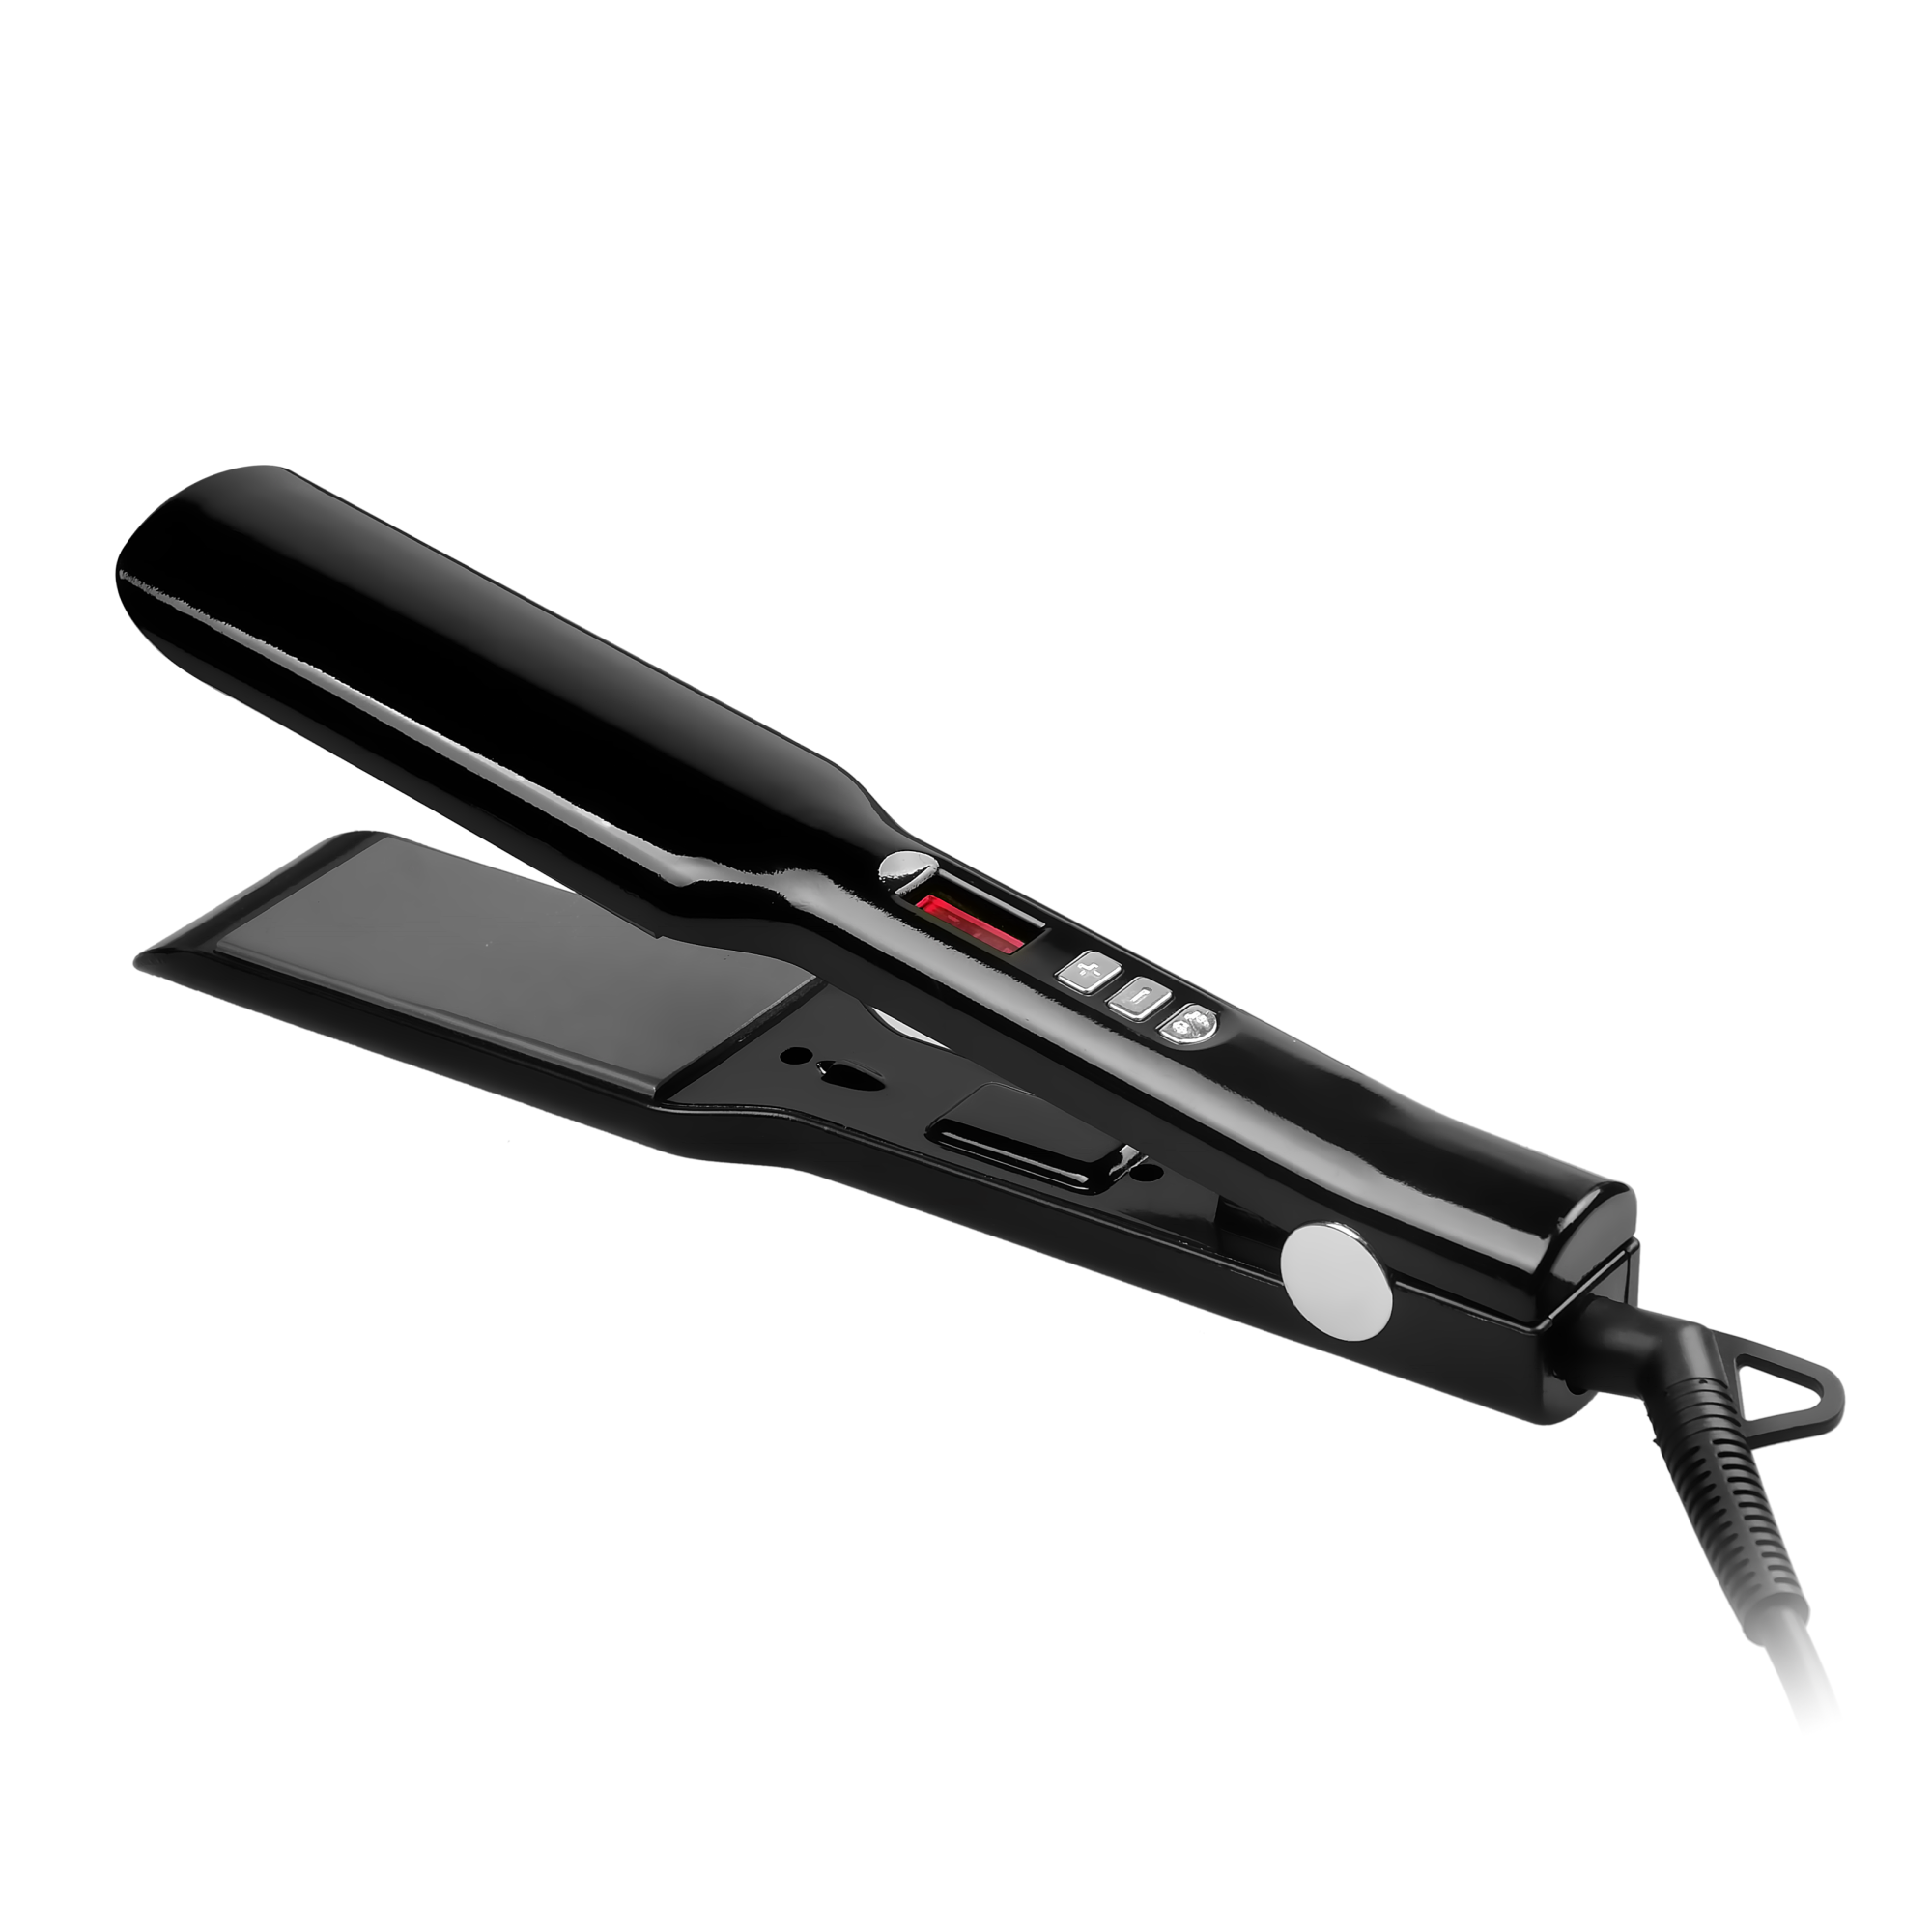 2018 new arrival fast MCH ions hair straightener private label flat iron